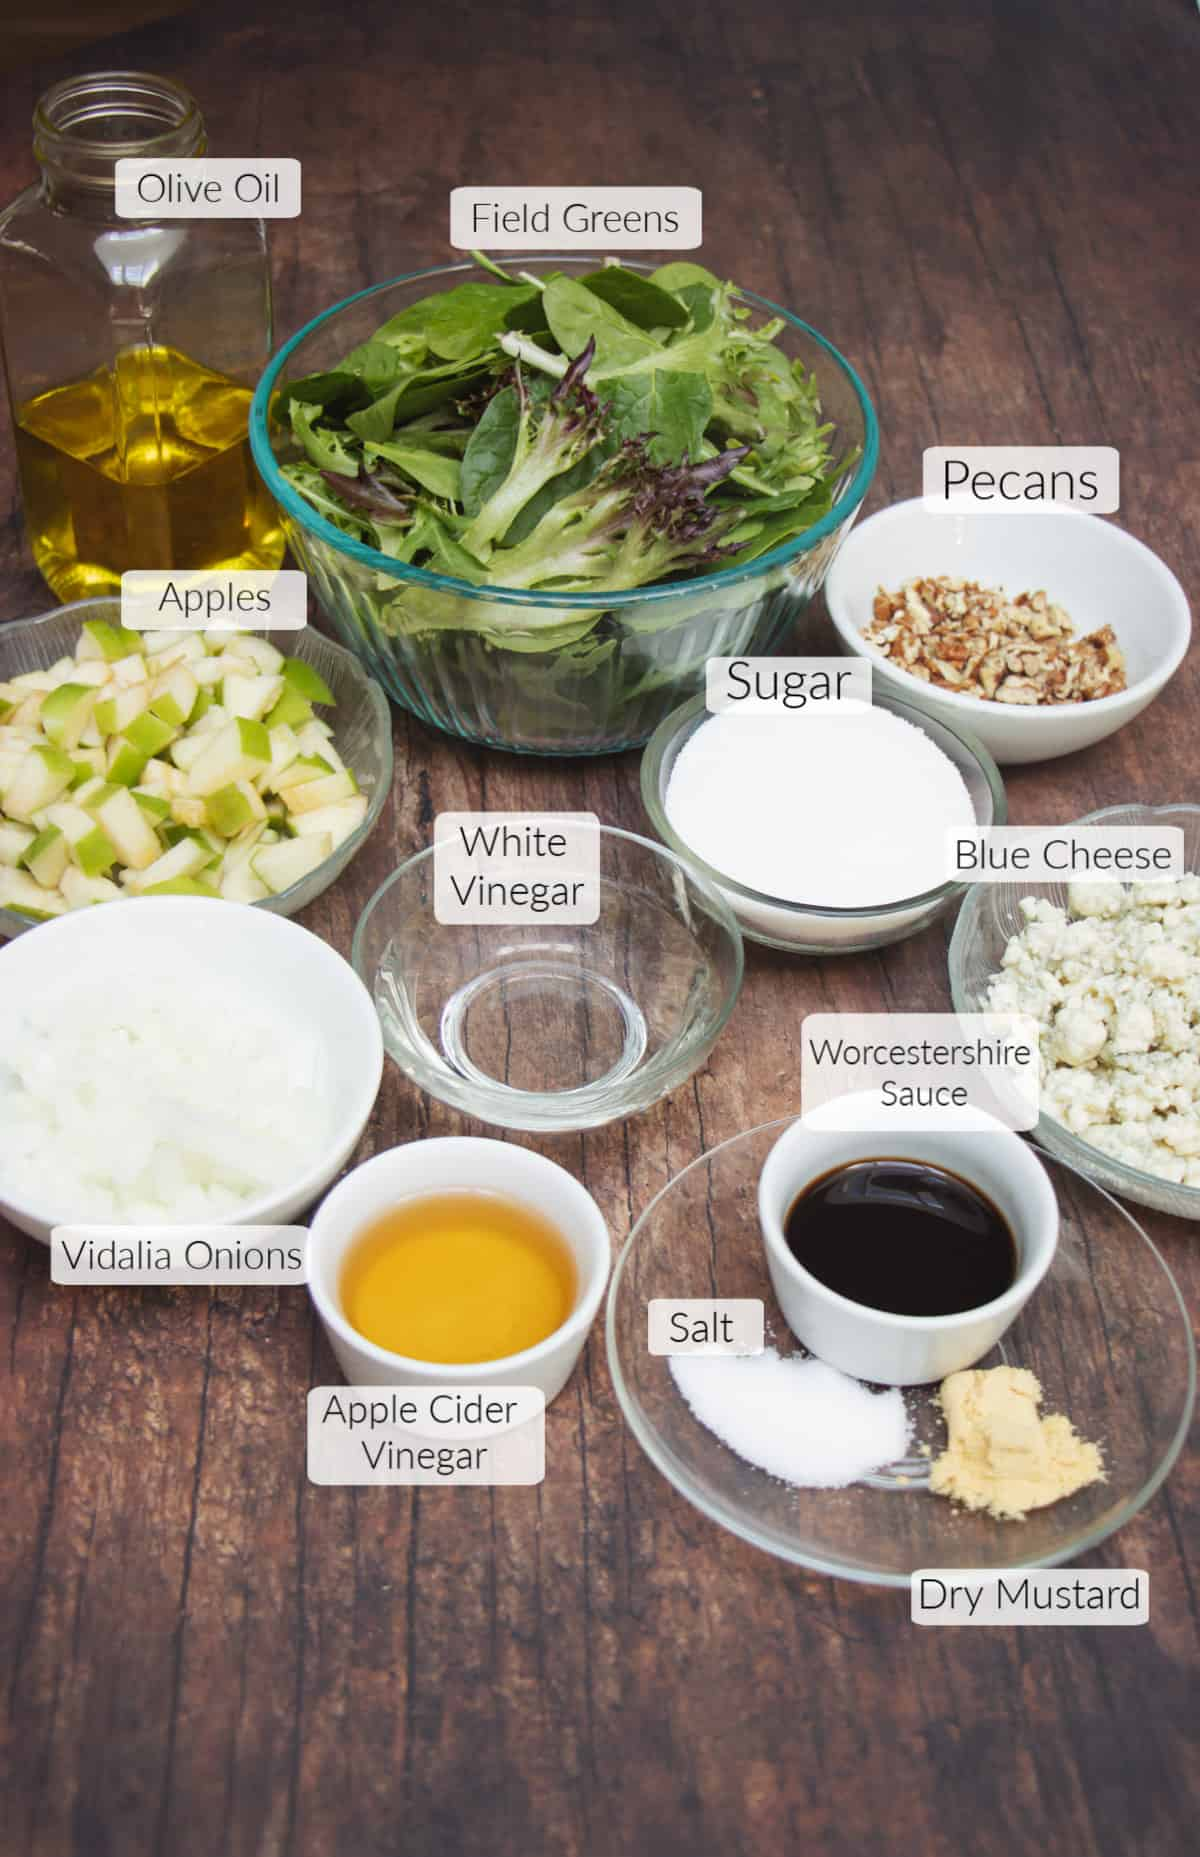 Ingredients in bowls with labels for making Field Greens Salad with Vidalia Onion Dressing, Blue Cheese, Apples and Toasted Pecans